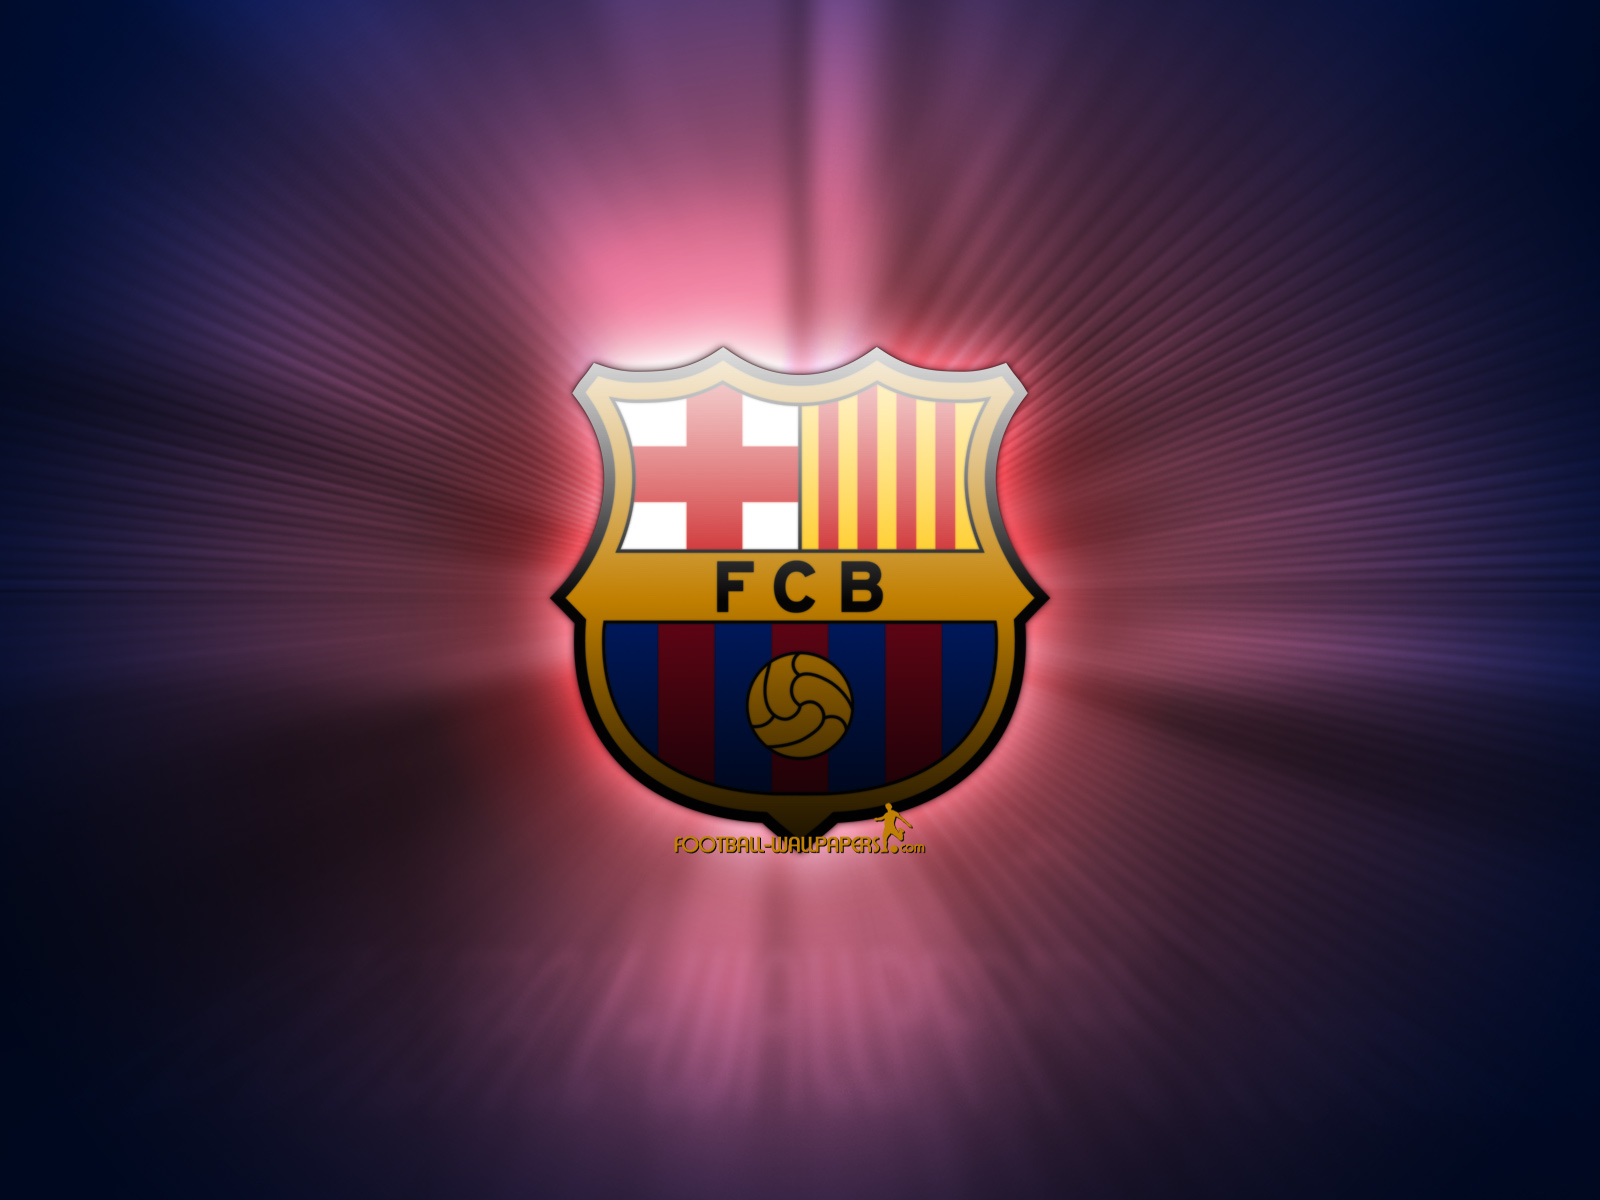 World Sports Hd Wallpapers: FC Barcelona Hd Wallpapers